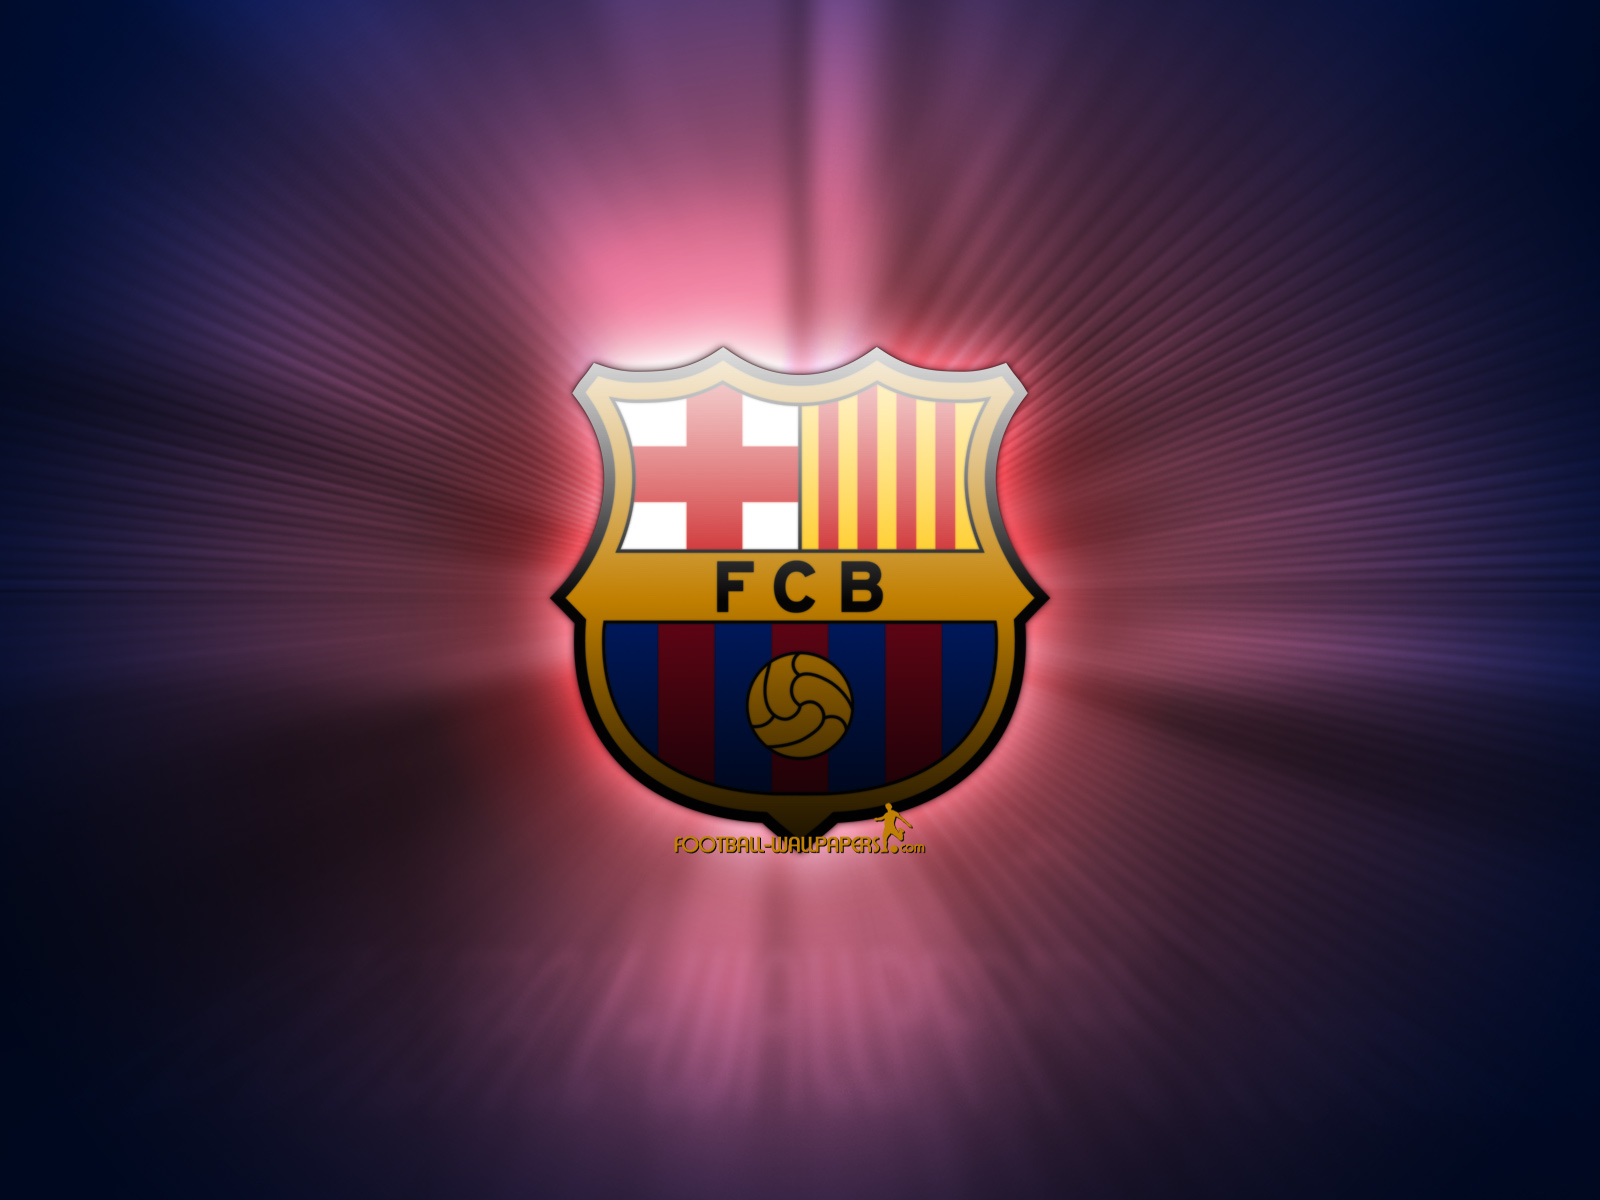 World Sports Hd Wallpapers: FC Barcelona Hd Wallpapers